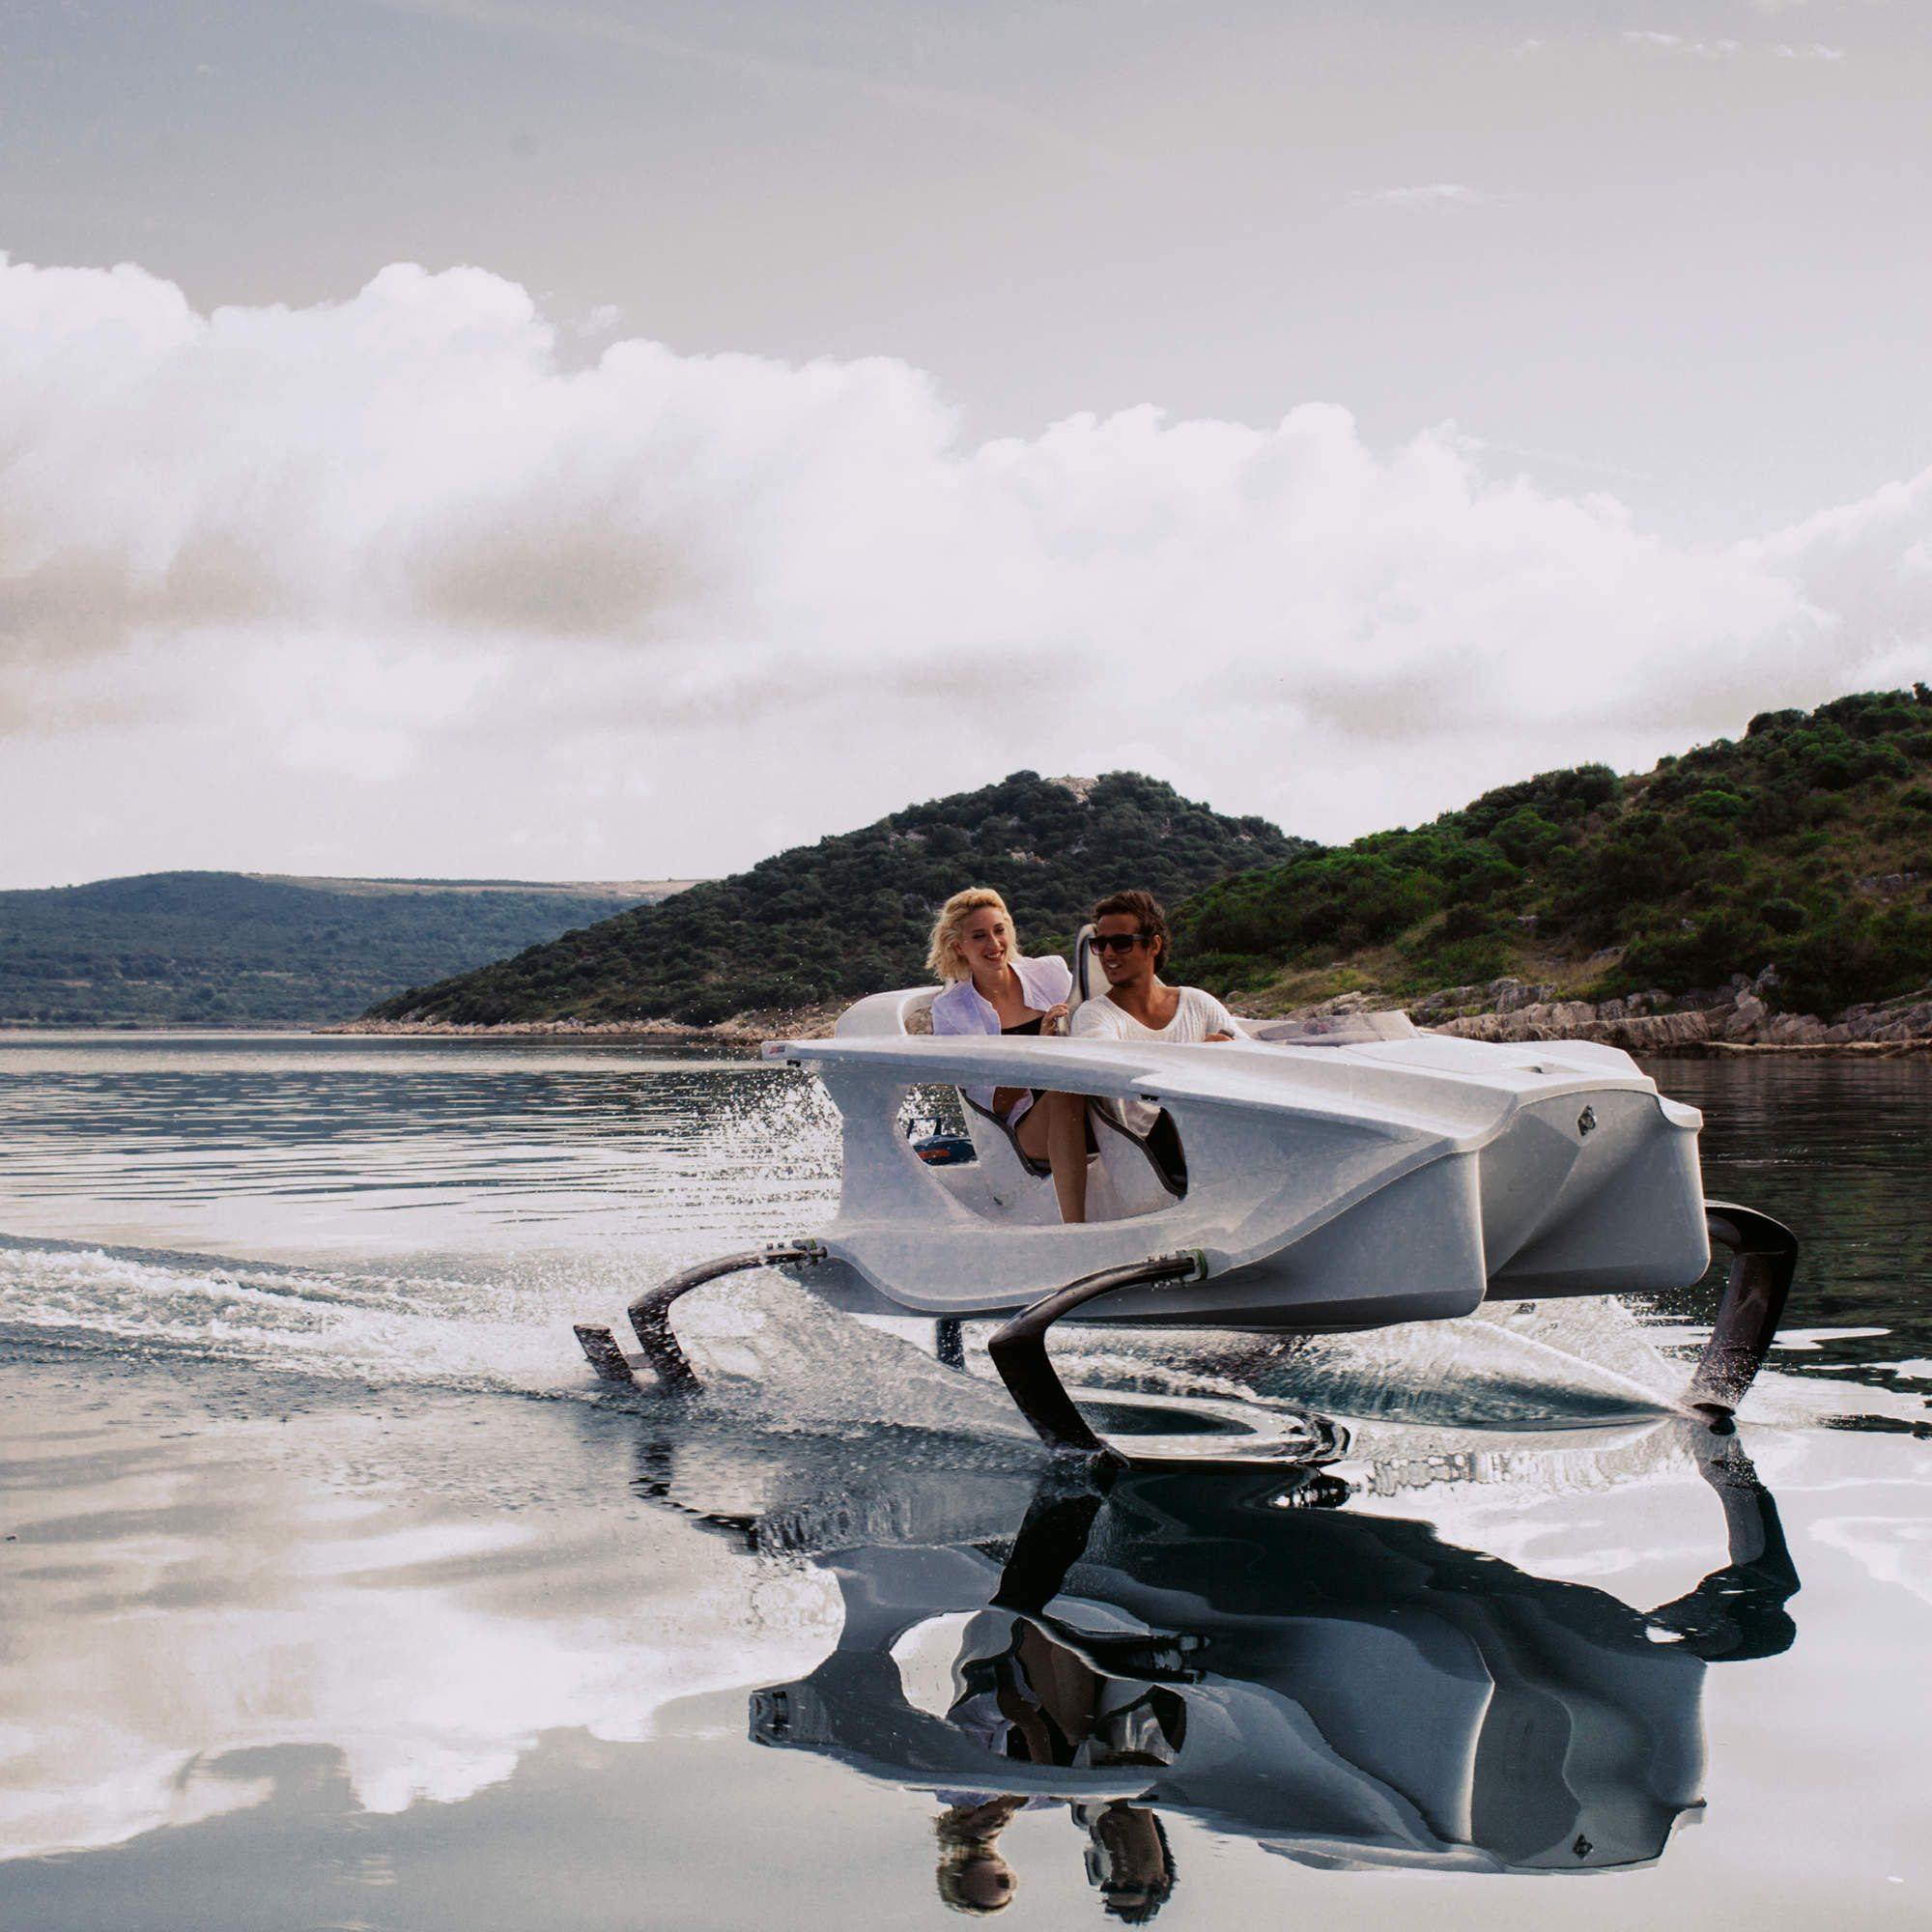 The All Electric Personal Hydrofoil Boat